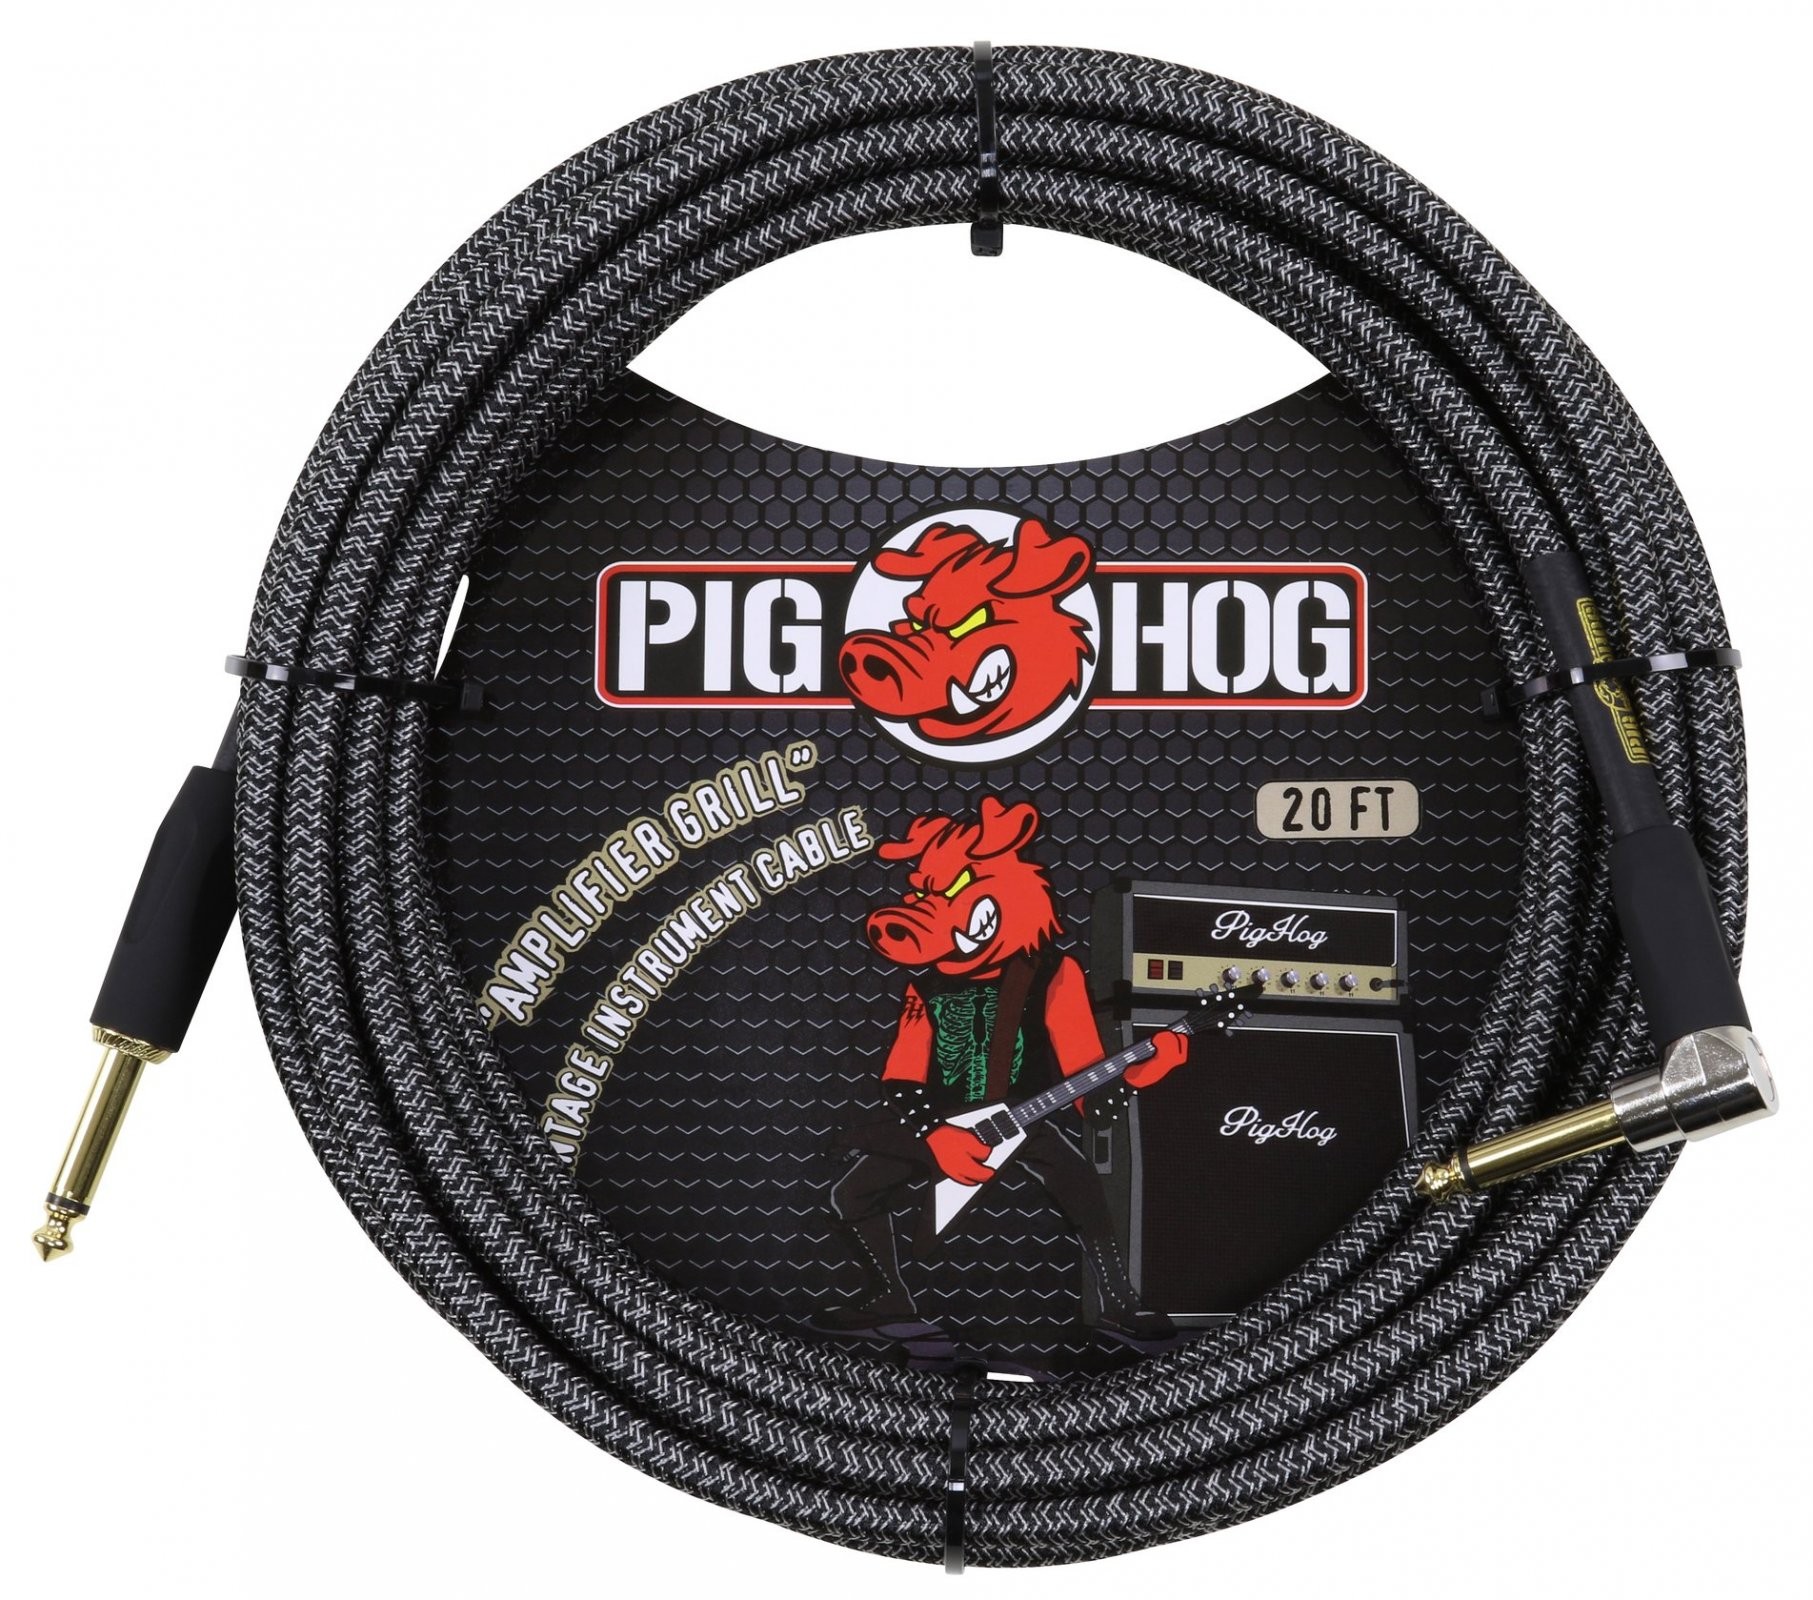 Pig Hog Amp Grill 20ft Instrument Cable - Right Angle